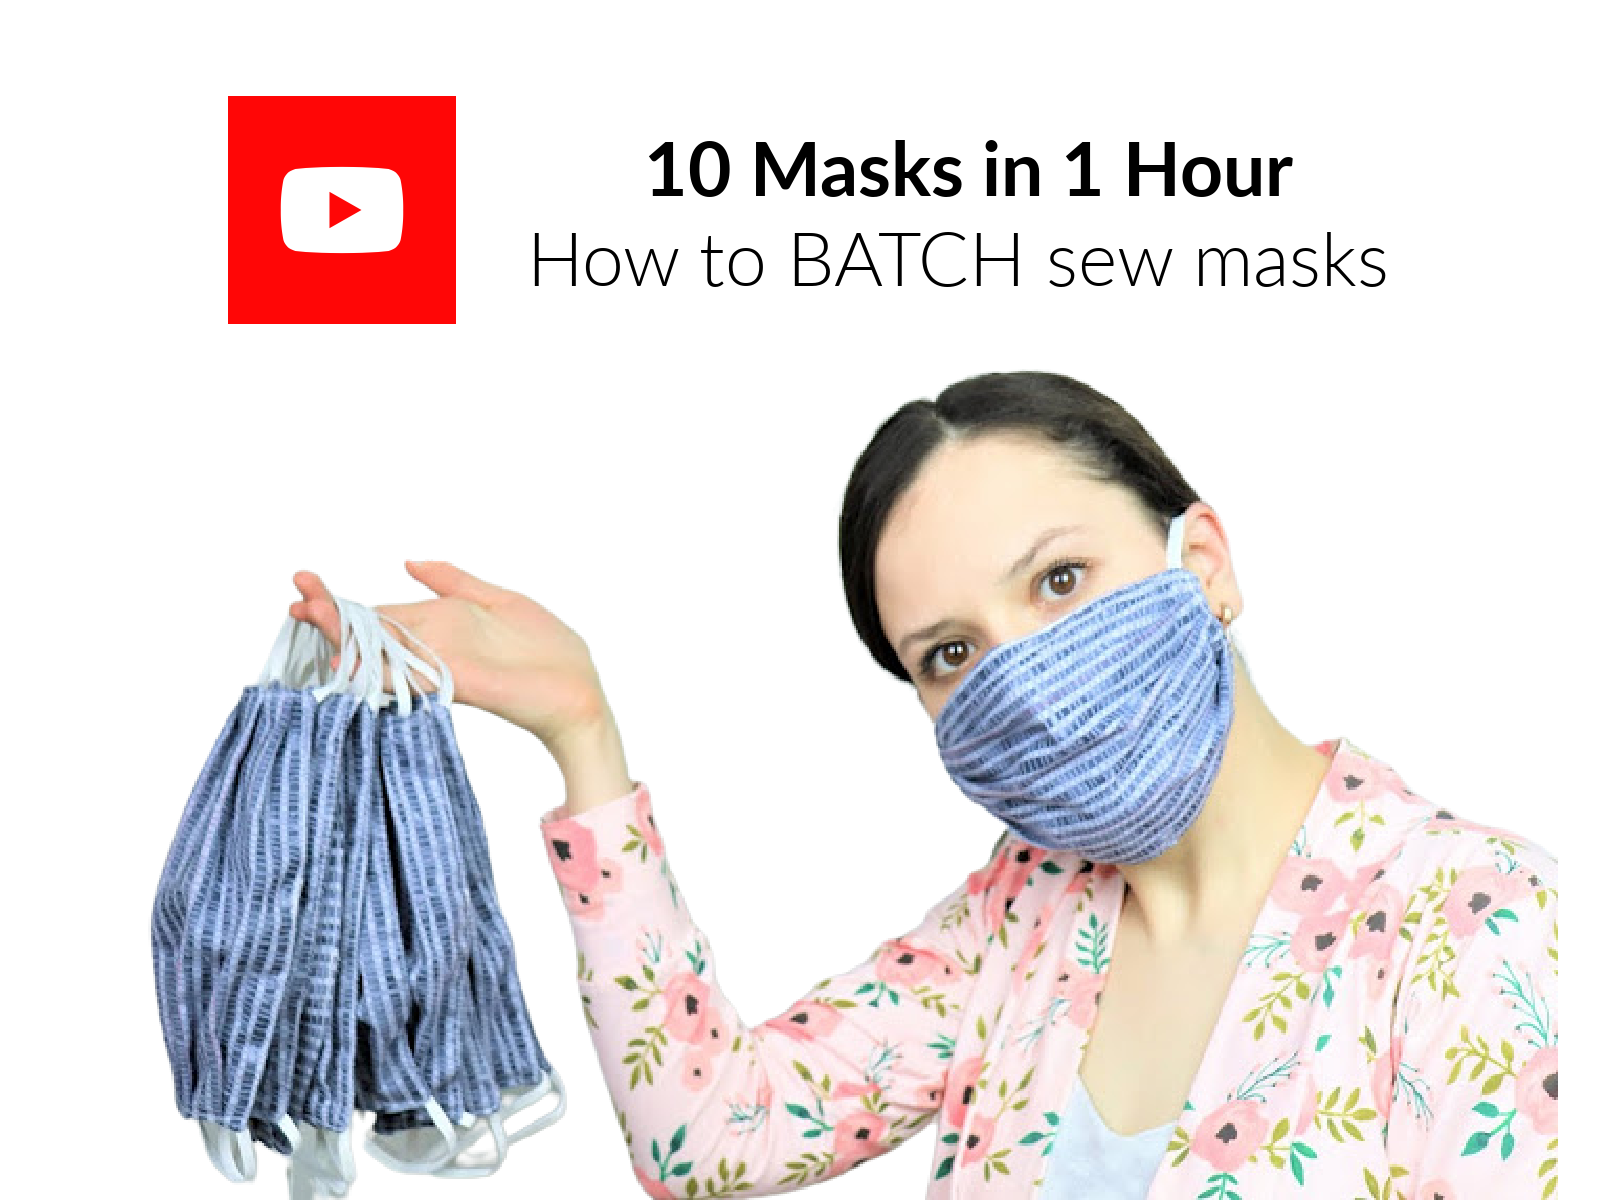 10 Masks in 1 Hour